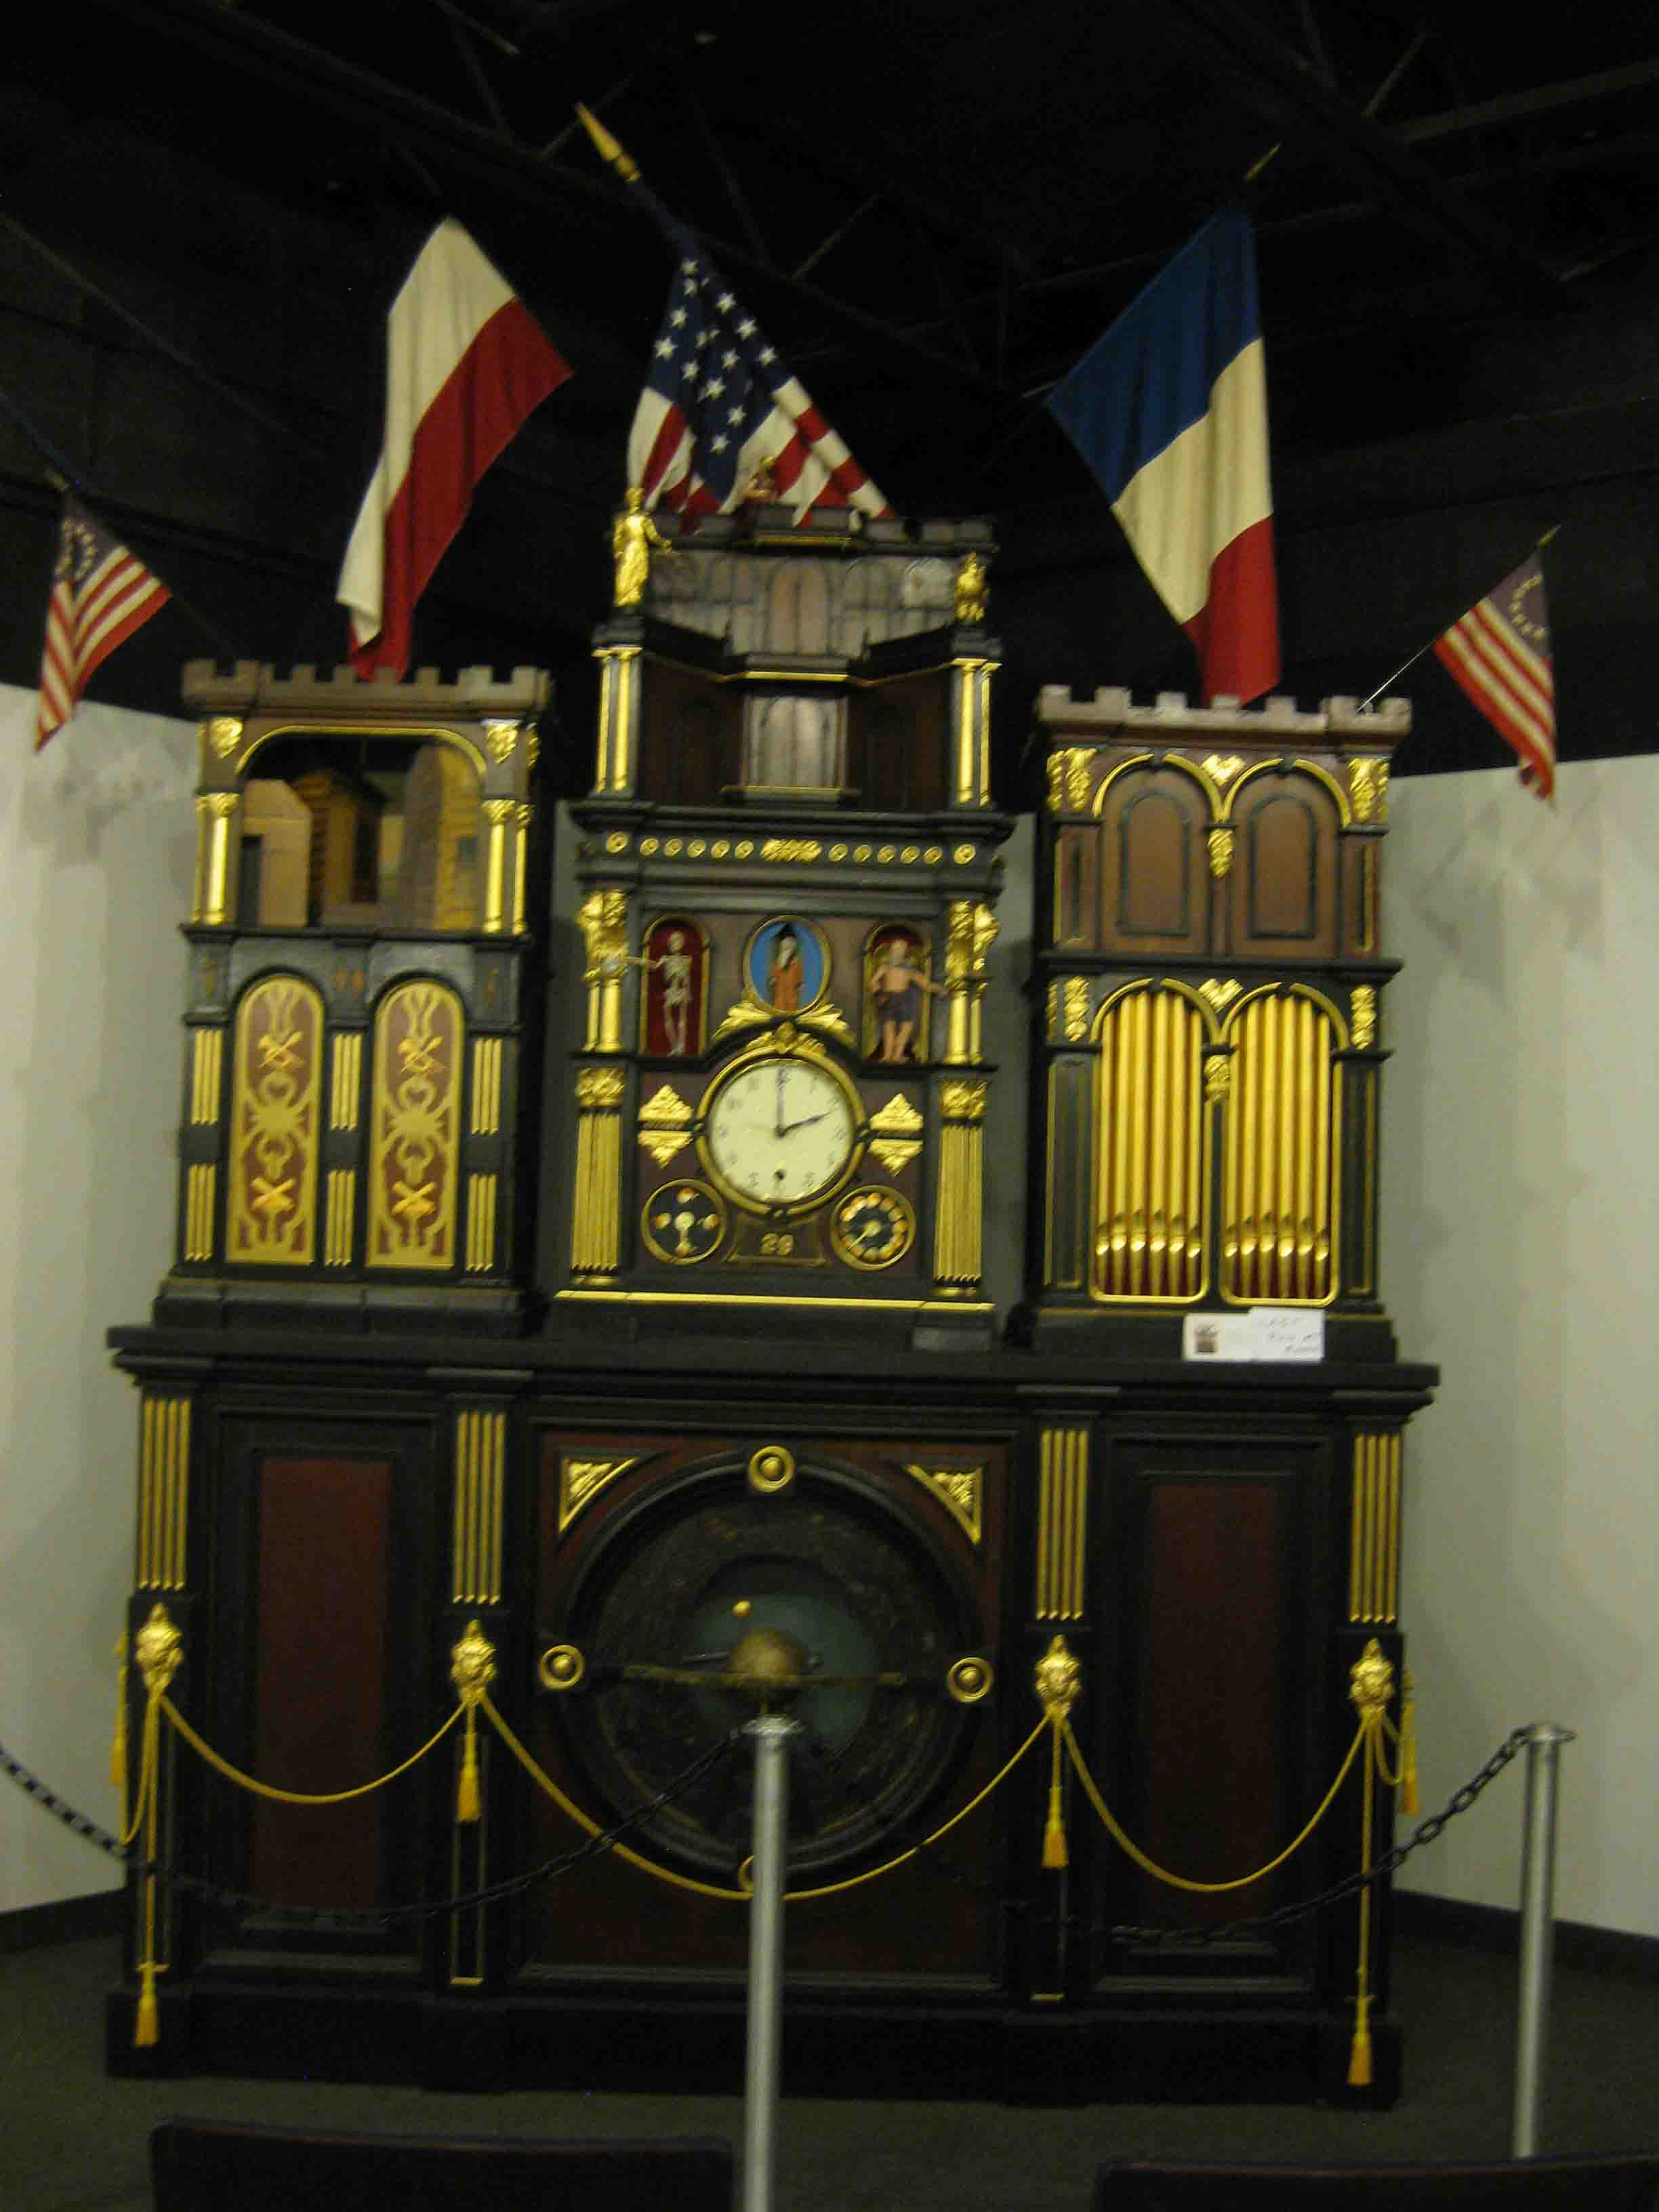 monumental clock at the watch and clock museum